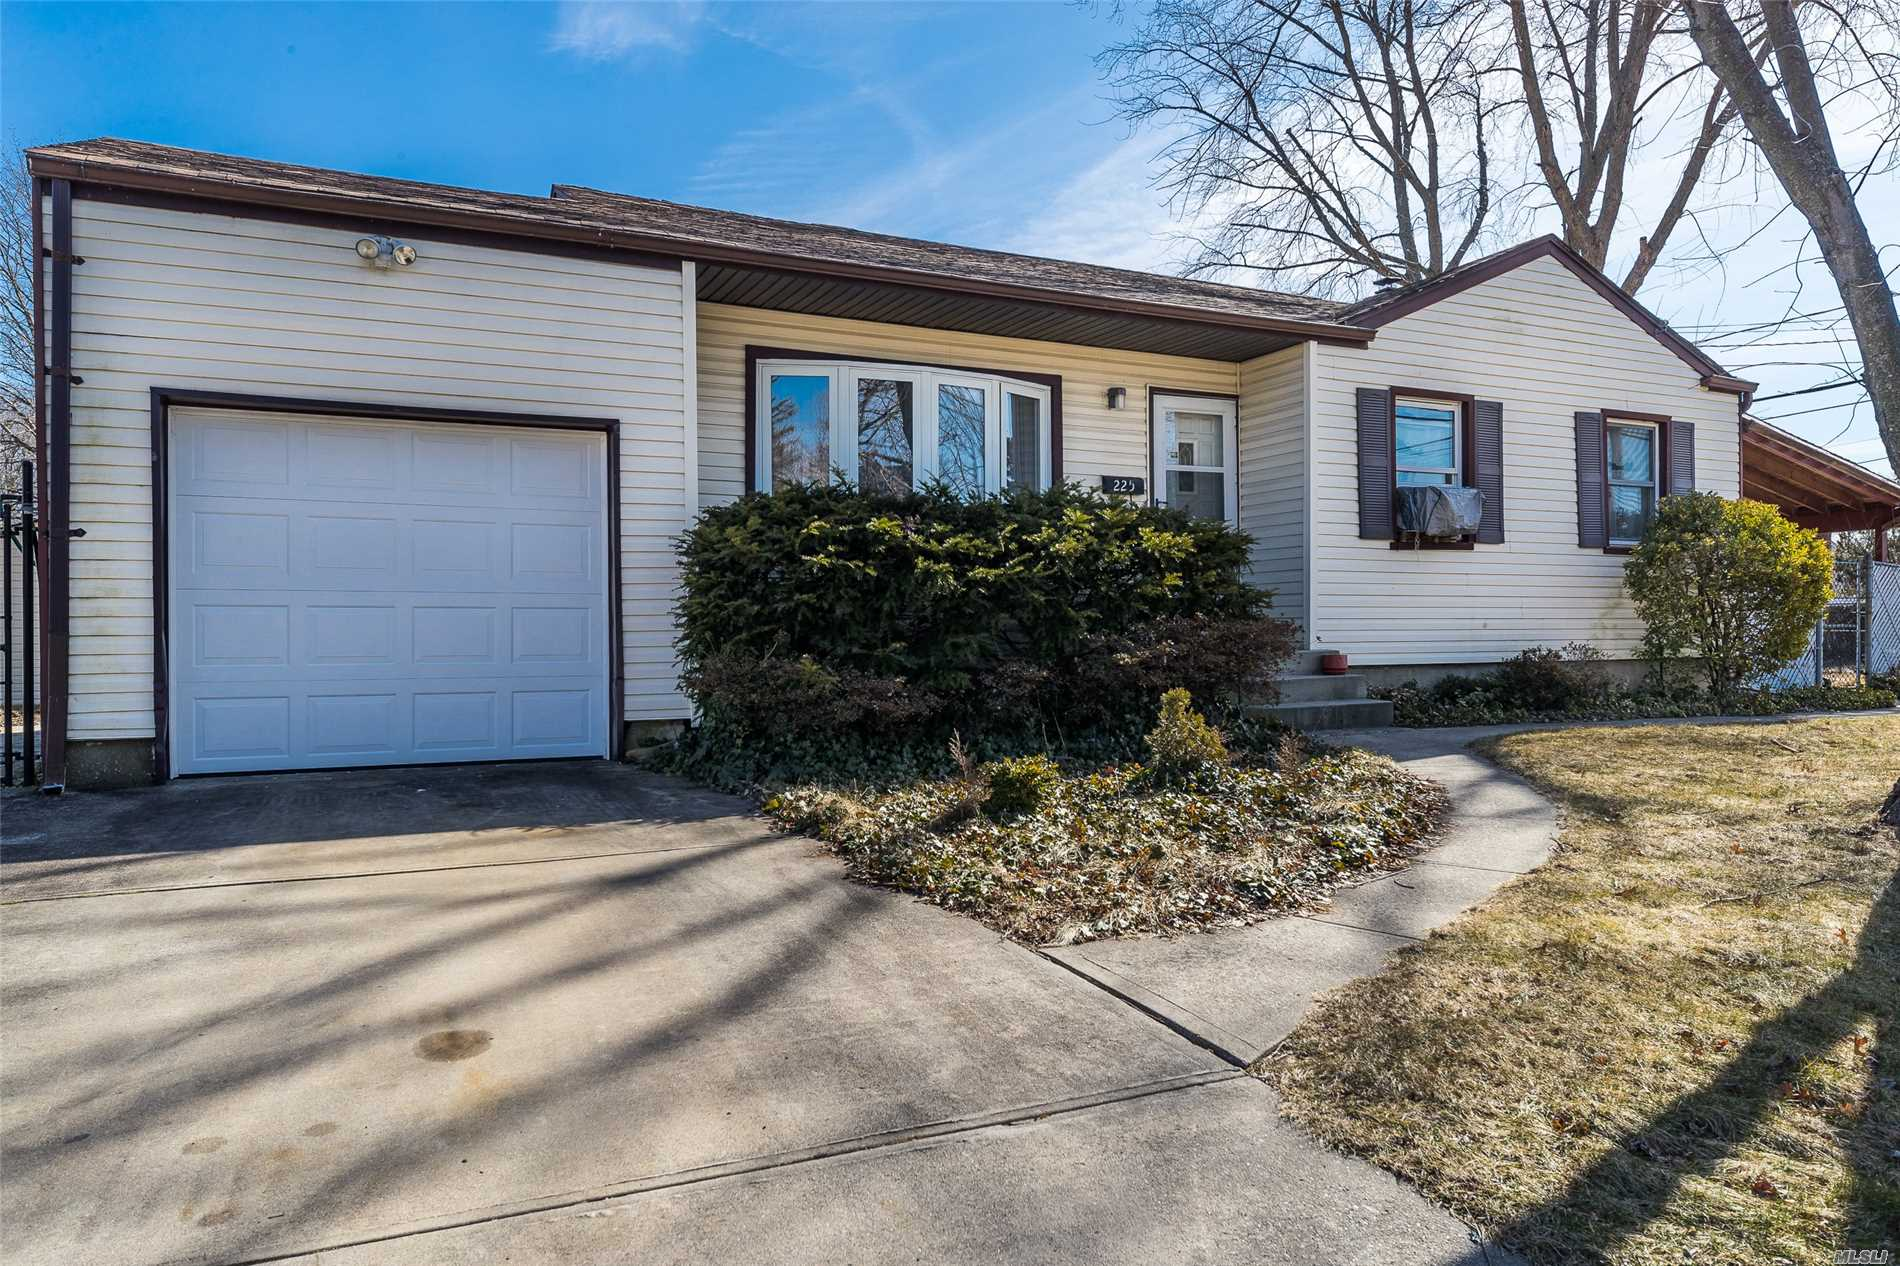 This Immaculate And Spacious Ranch Features An Updated Kitchen With Granite Countertops And Stainless Steel Appliances; Large Finished Basement With Utility Room; Gleaming Hard Wood Floors, Huge Driveway And Large Property Great For Entertaining. Great Location Nearby To Schools; Highways And Shopping.